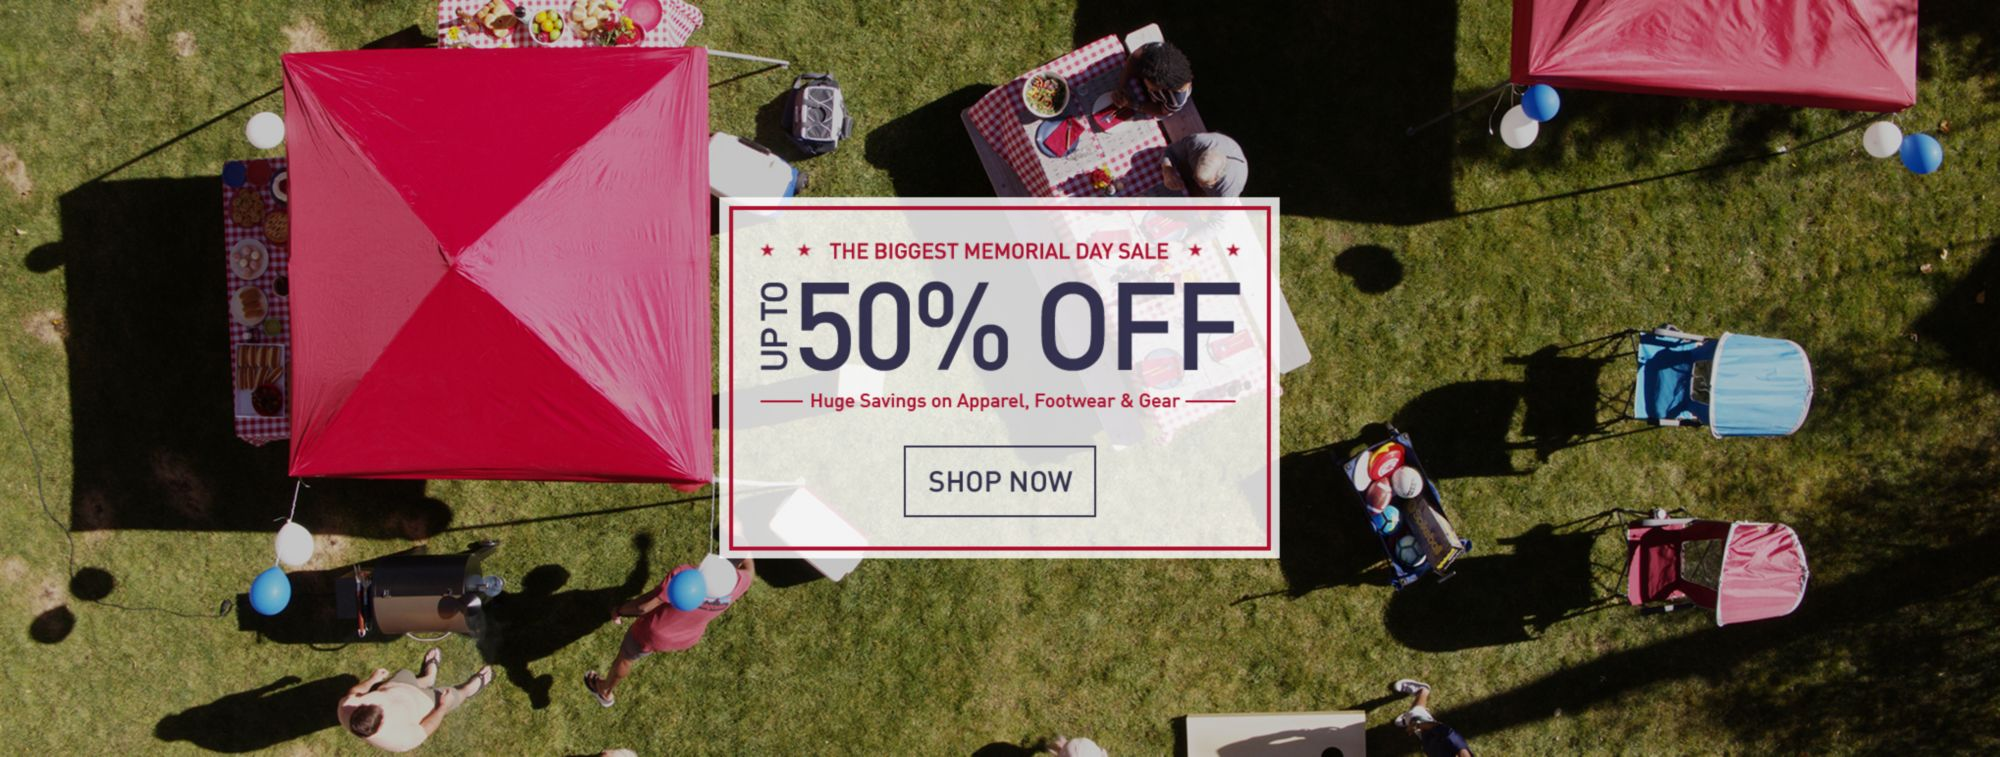 Up to 50% Off – The Biggest Memorial Day Sale